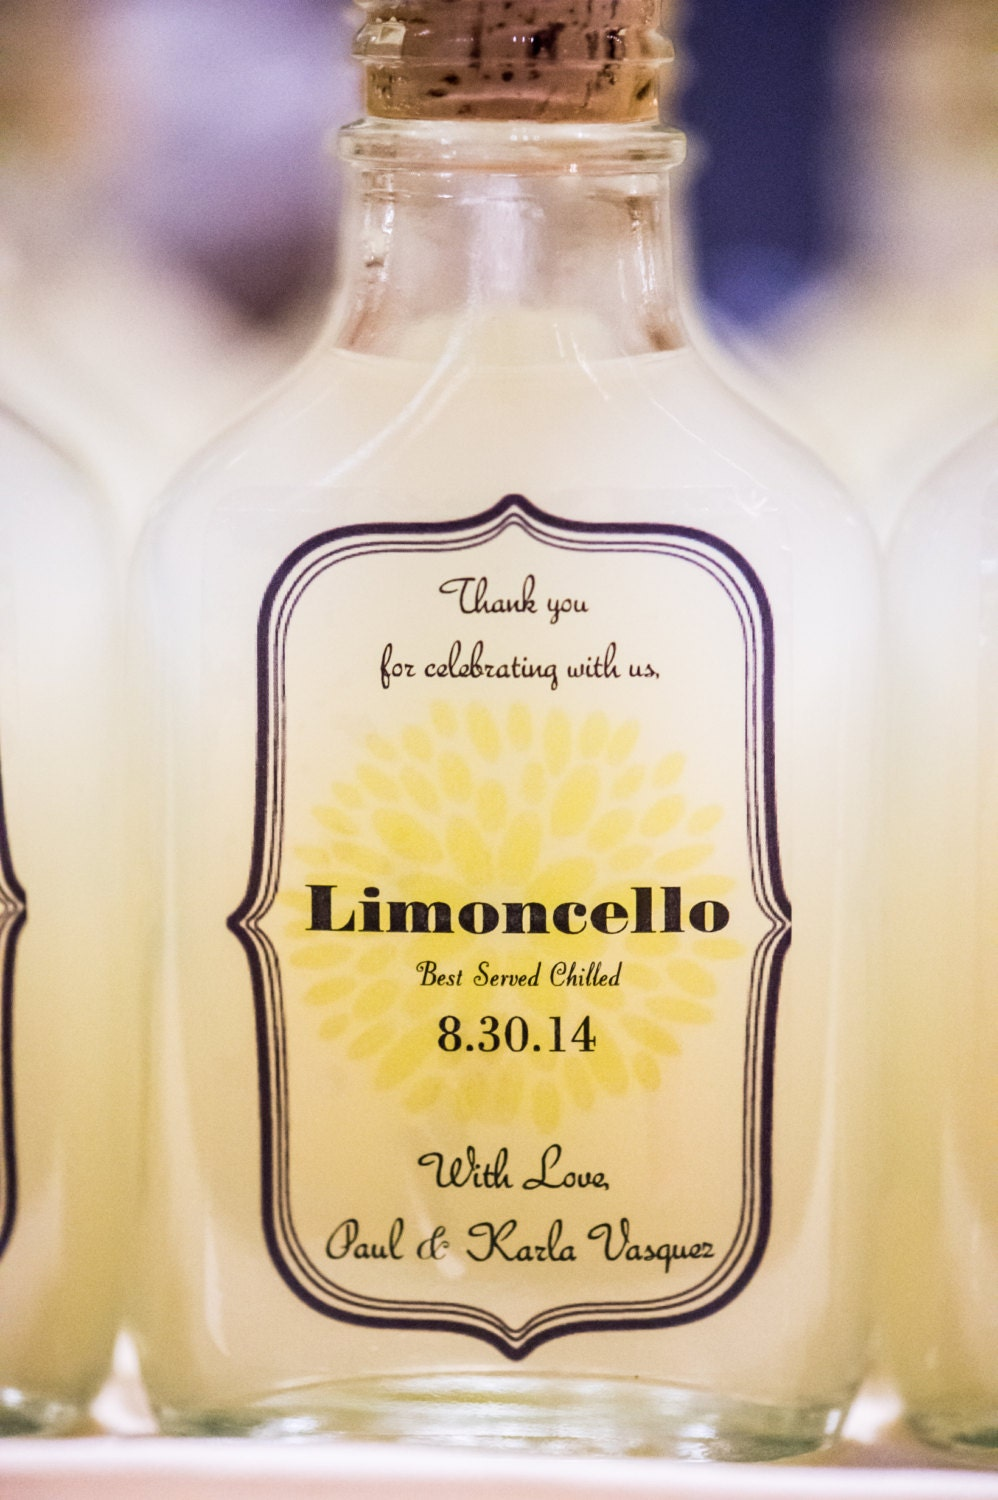 Custom Limoncello Labels Amp Bottles Great For Wedding Favors